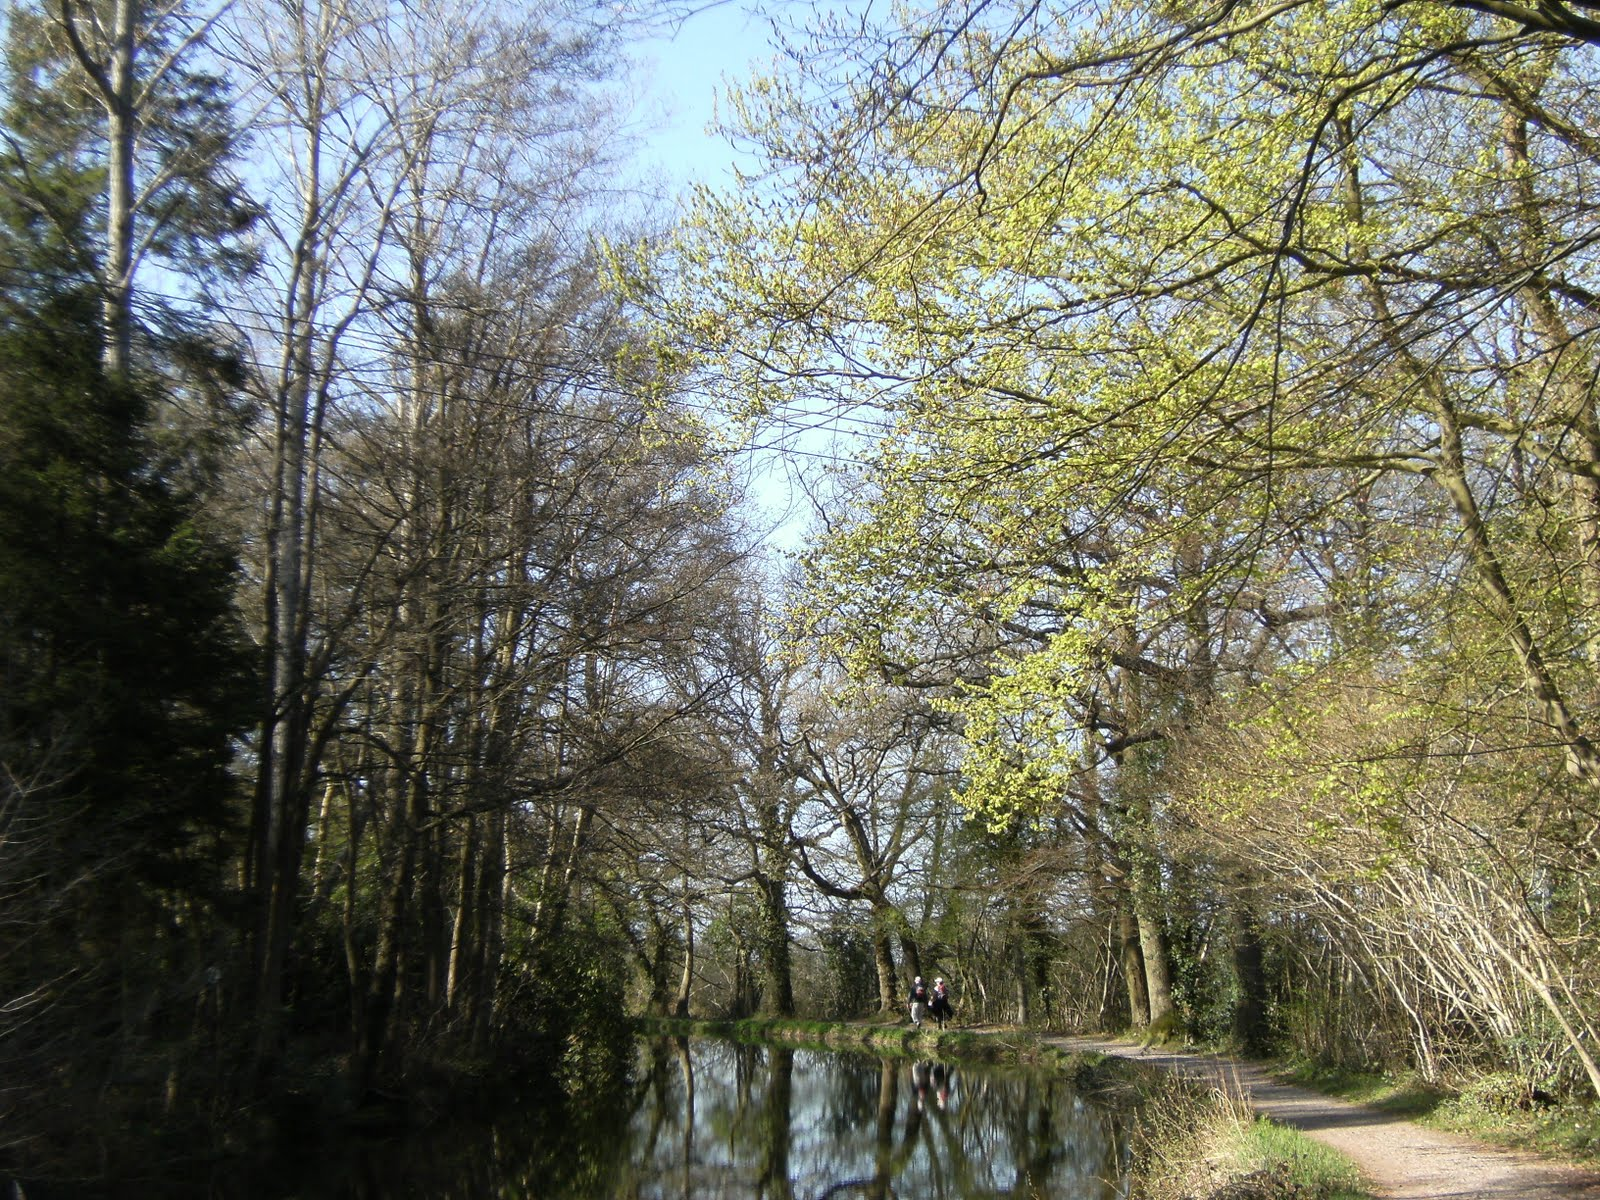 1004170024 Early spring on the Basingstoke Canal